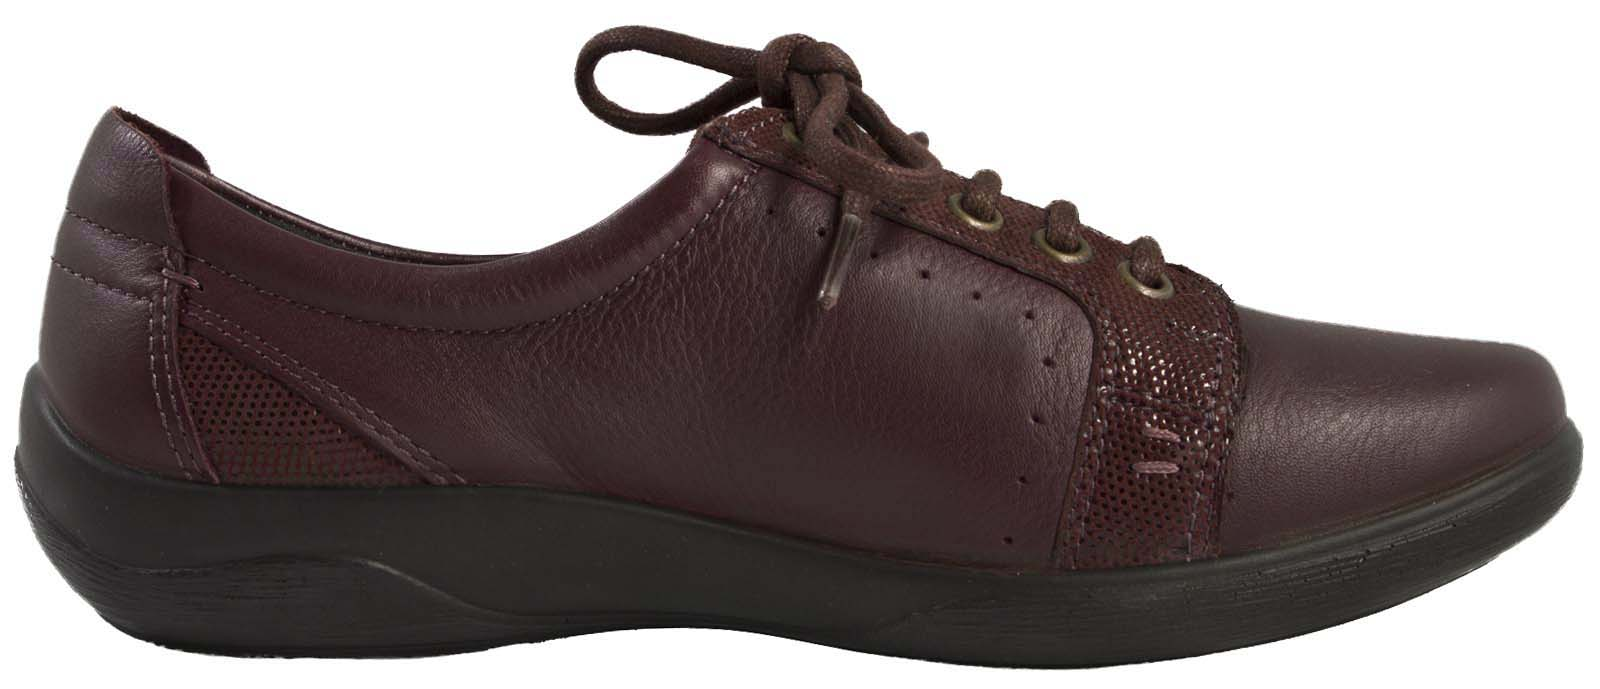 Black Leather Comfort Shoes  W Lace Up